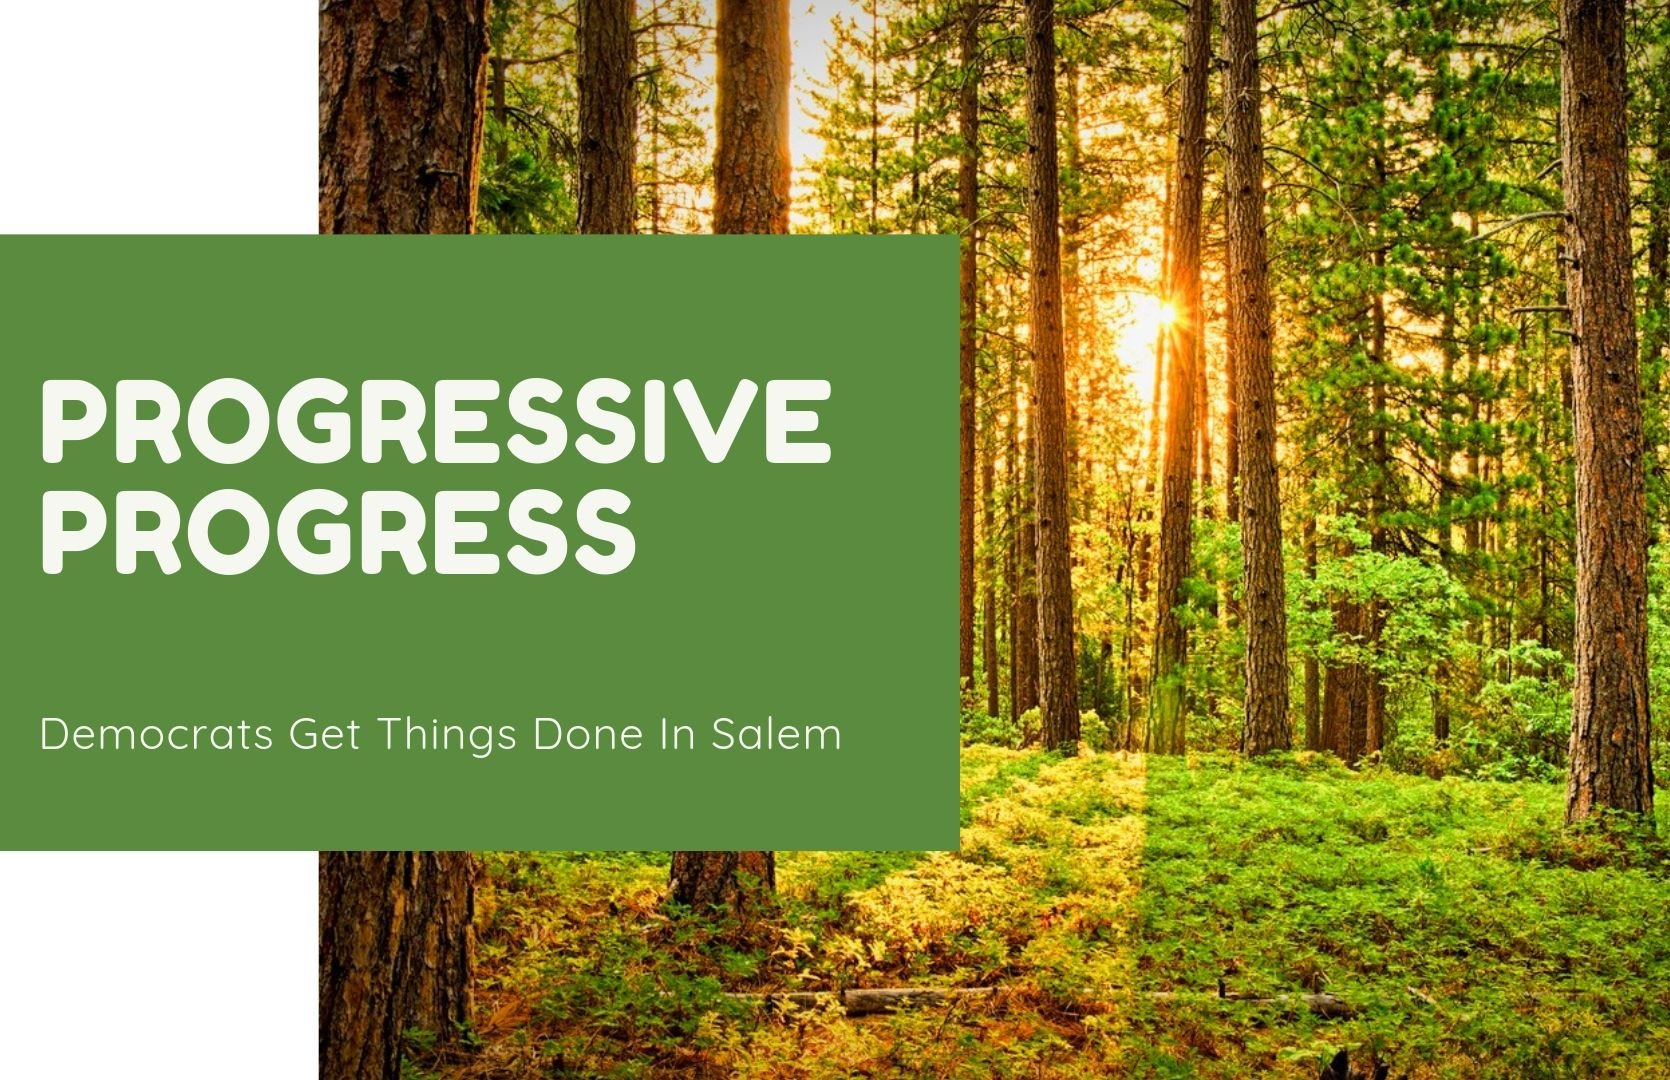 Democrats Get Things Done in Salem